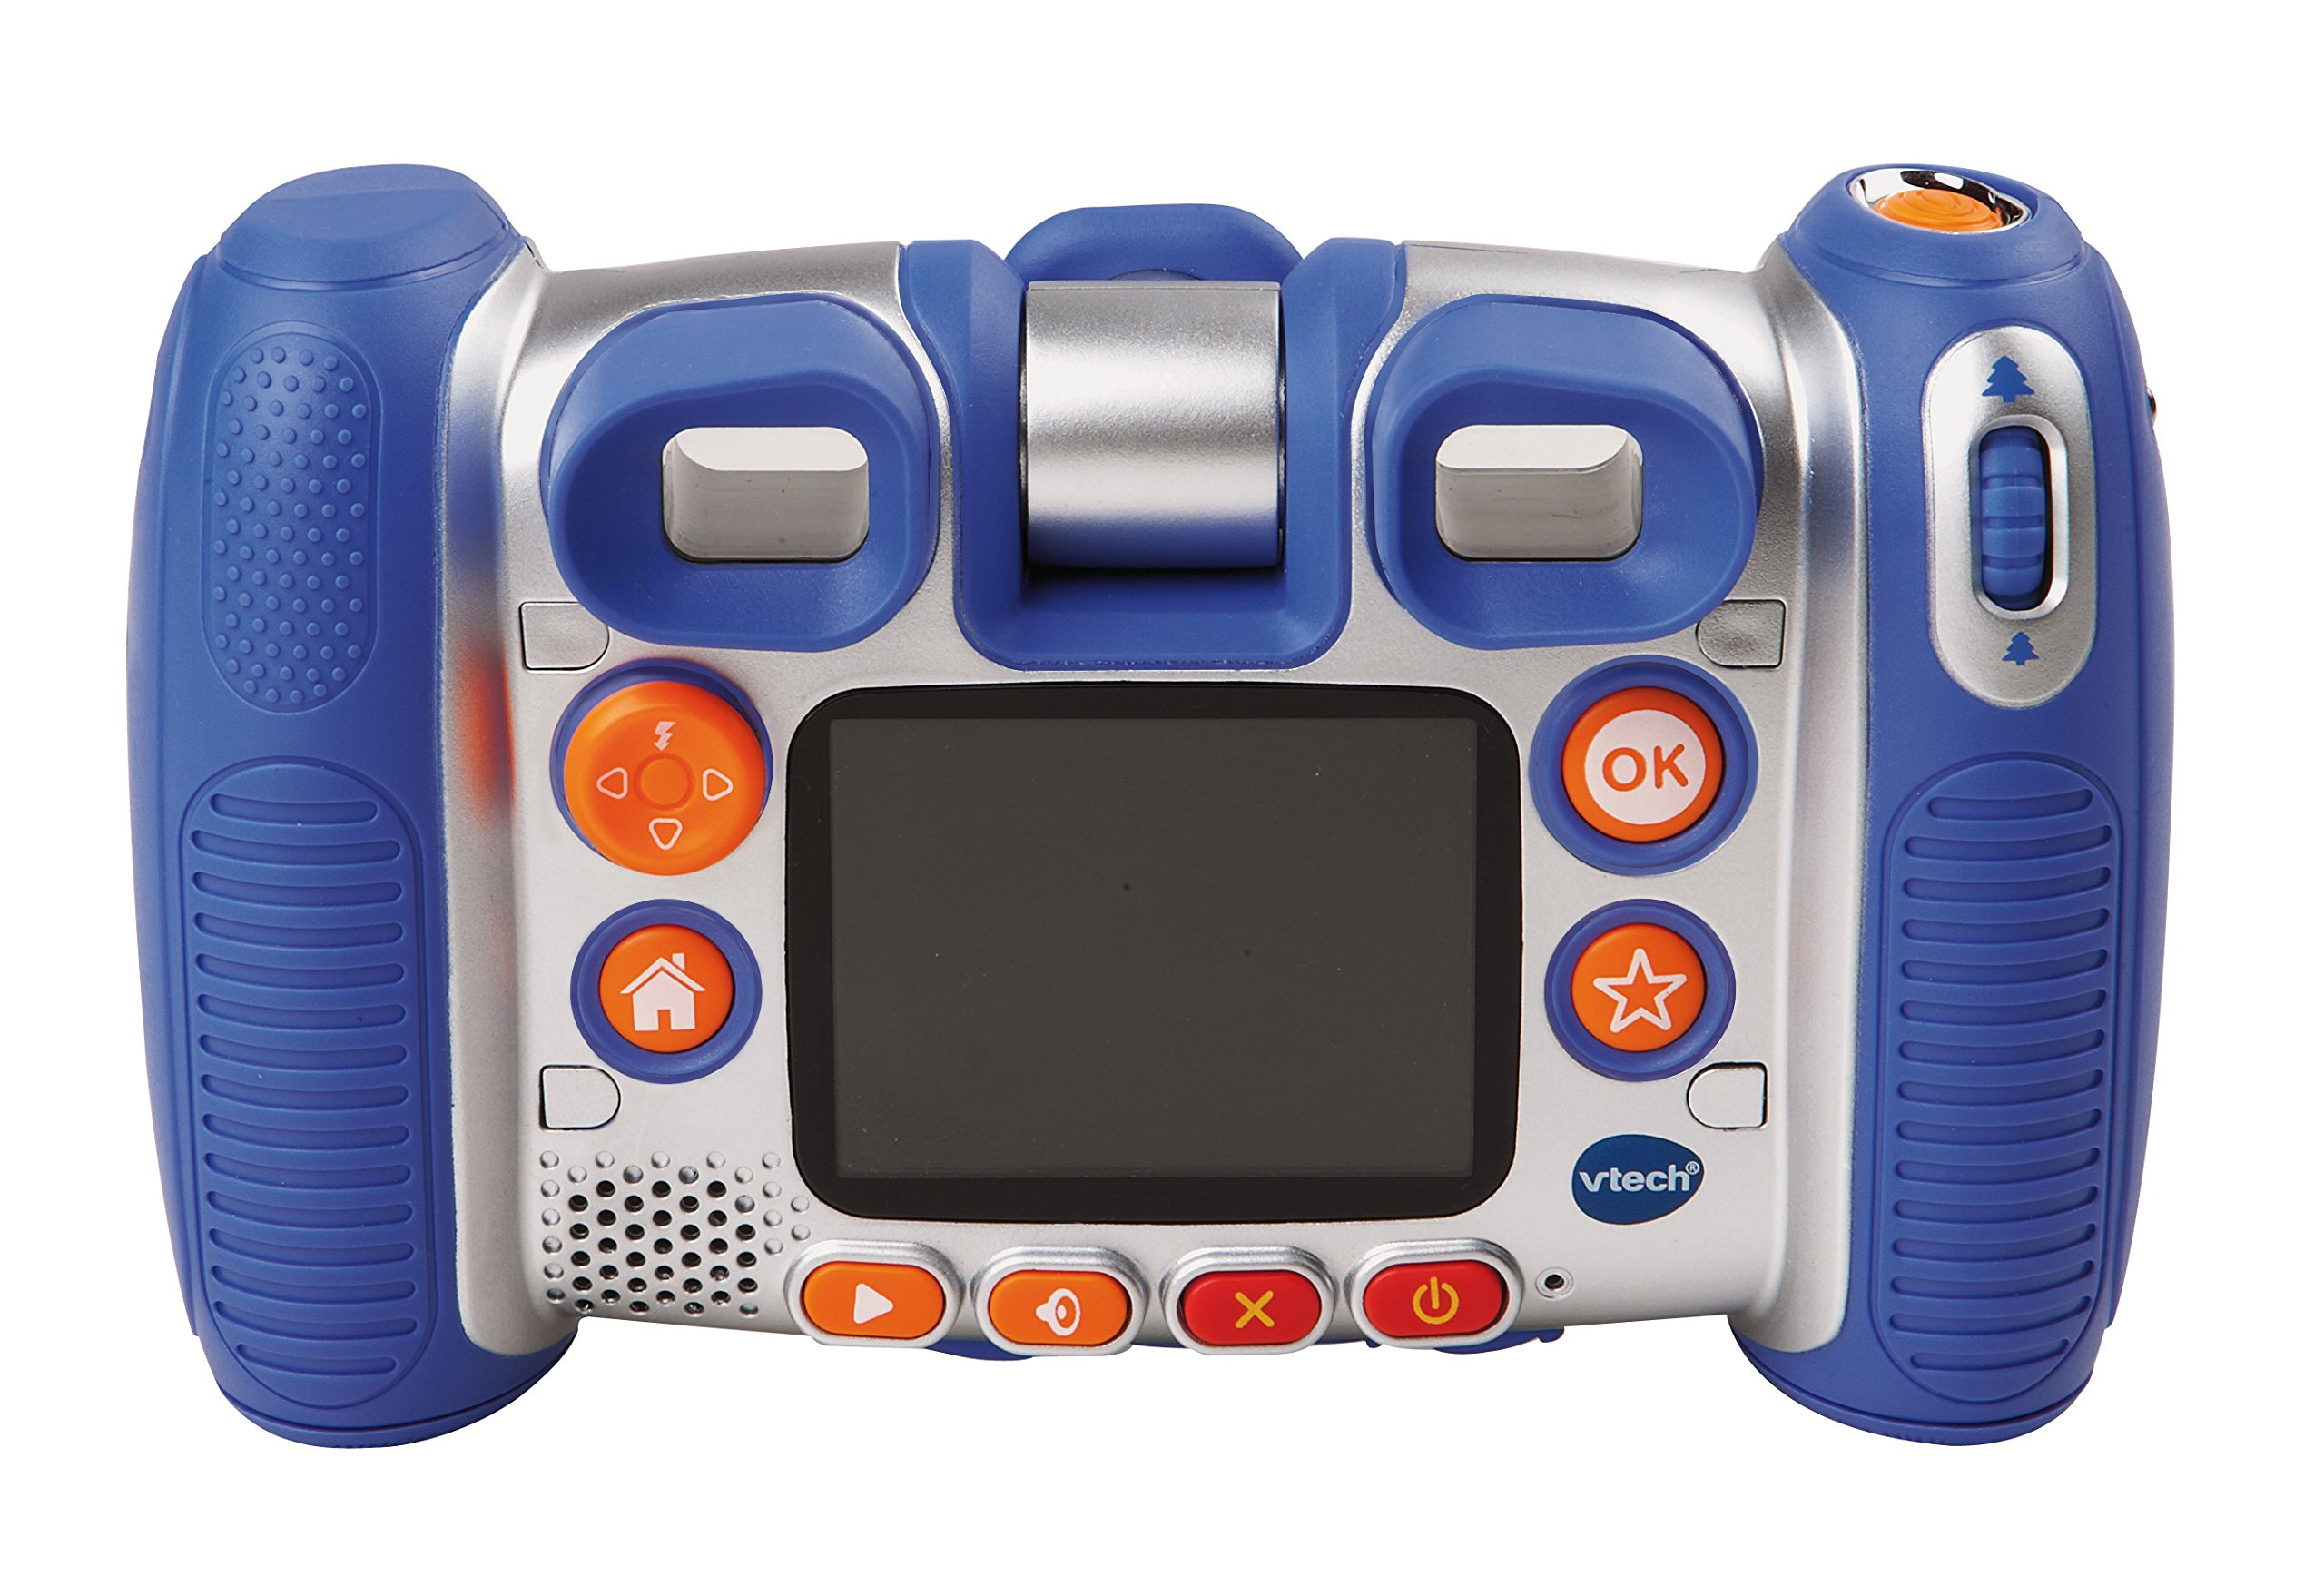 VTech Kidizoom Spin and Smile Camera, Blue by VTech (Image #2)